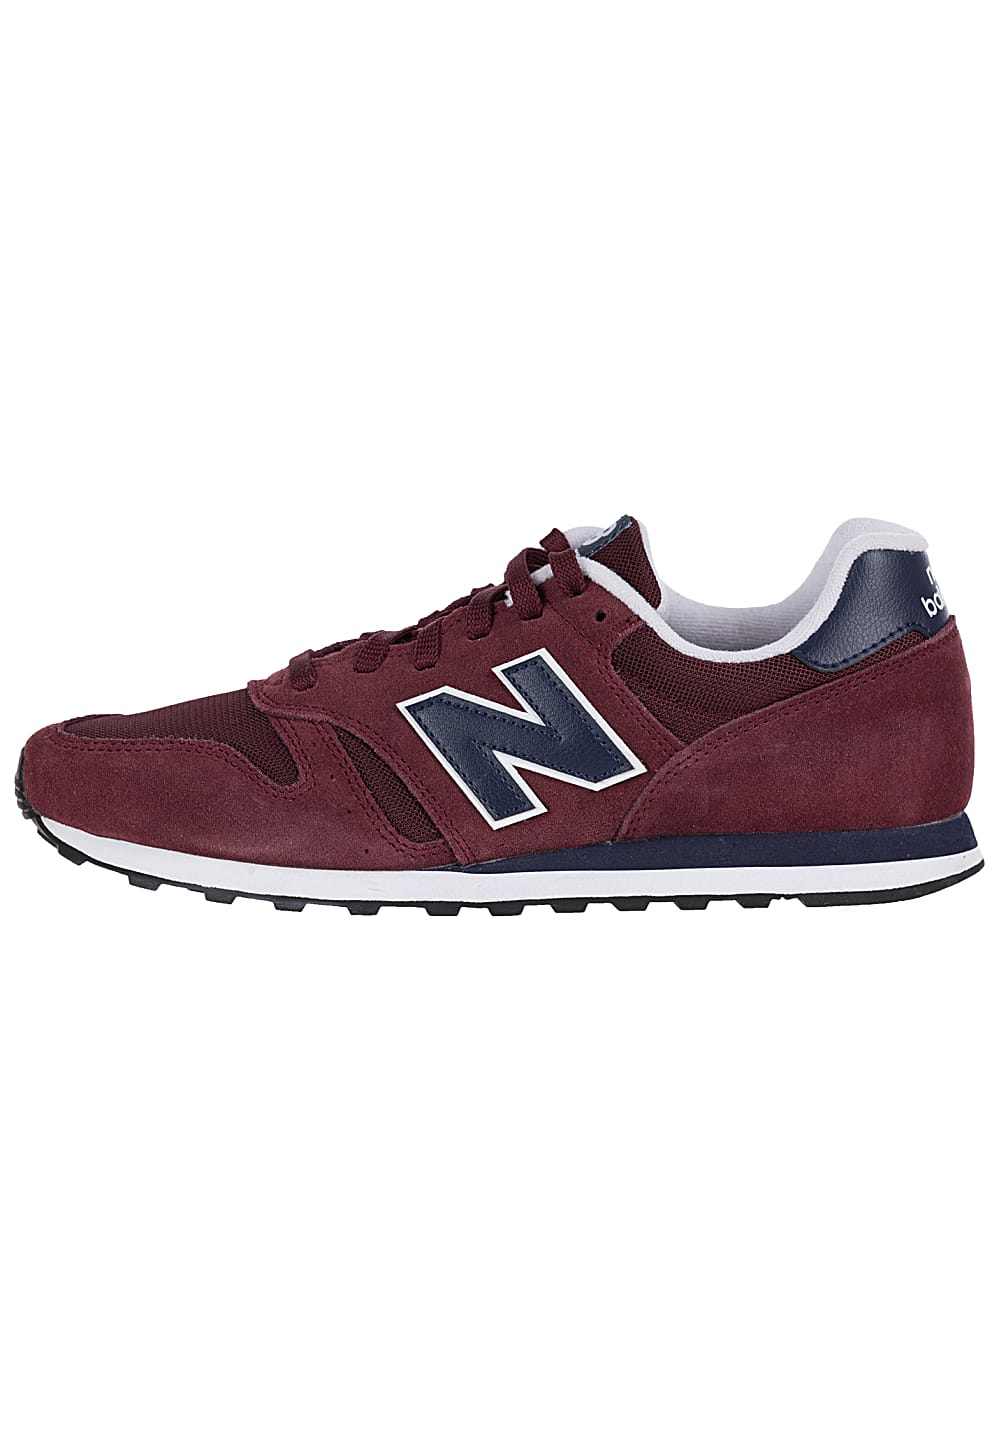 new style 6b5ee ce4f7 NEW BALANCE ML373 D - Sneakers for Men - Red